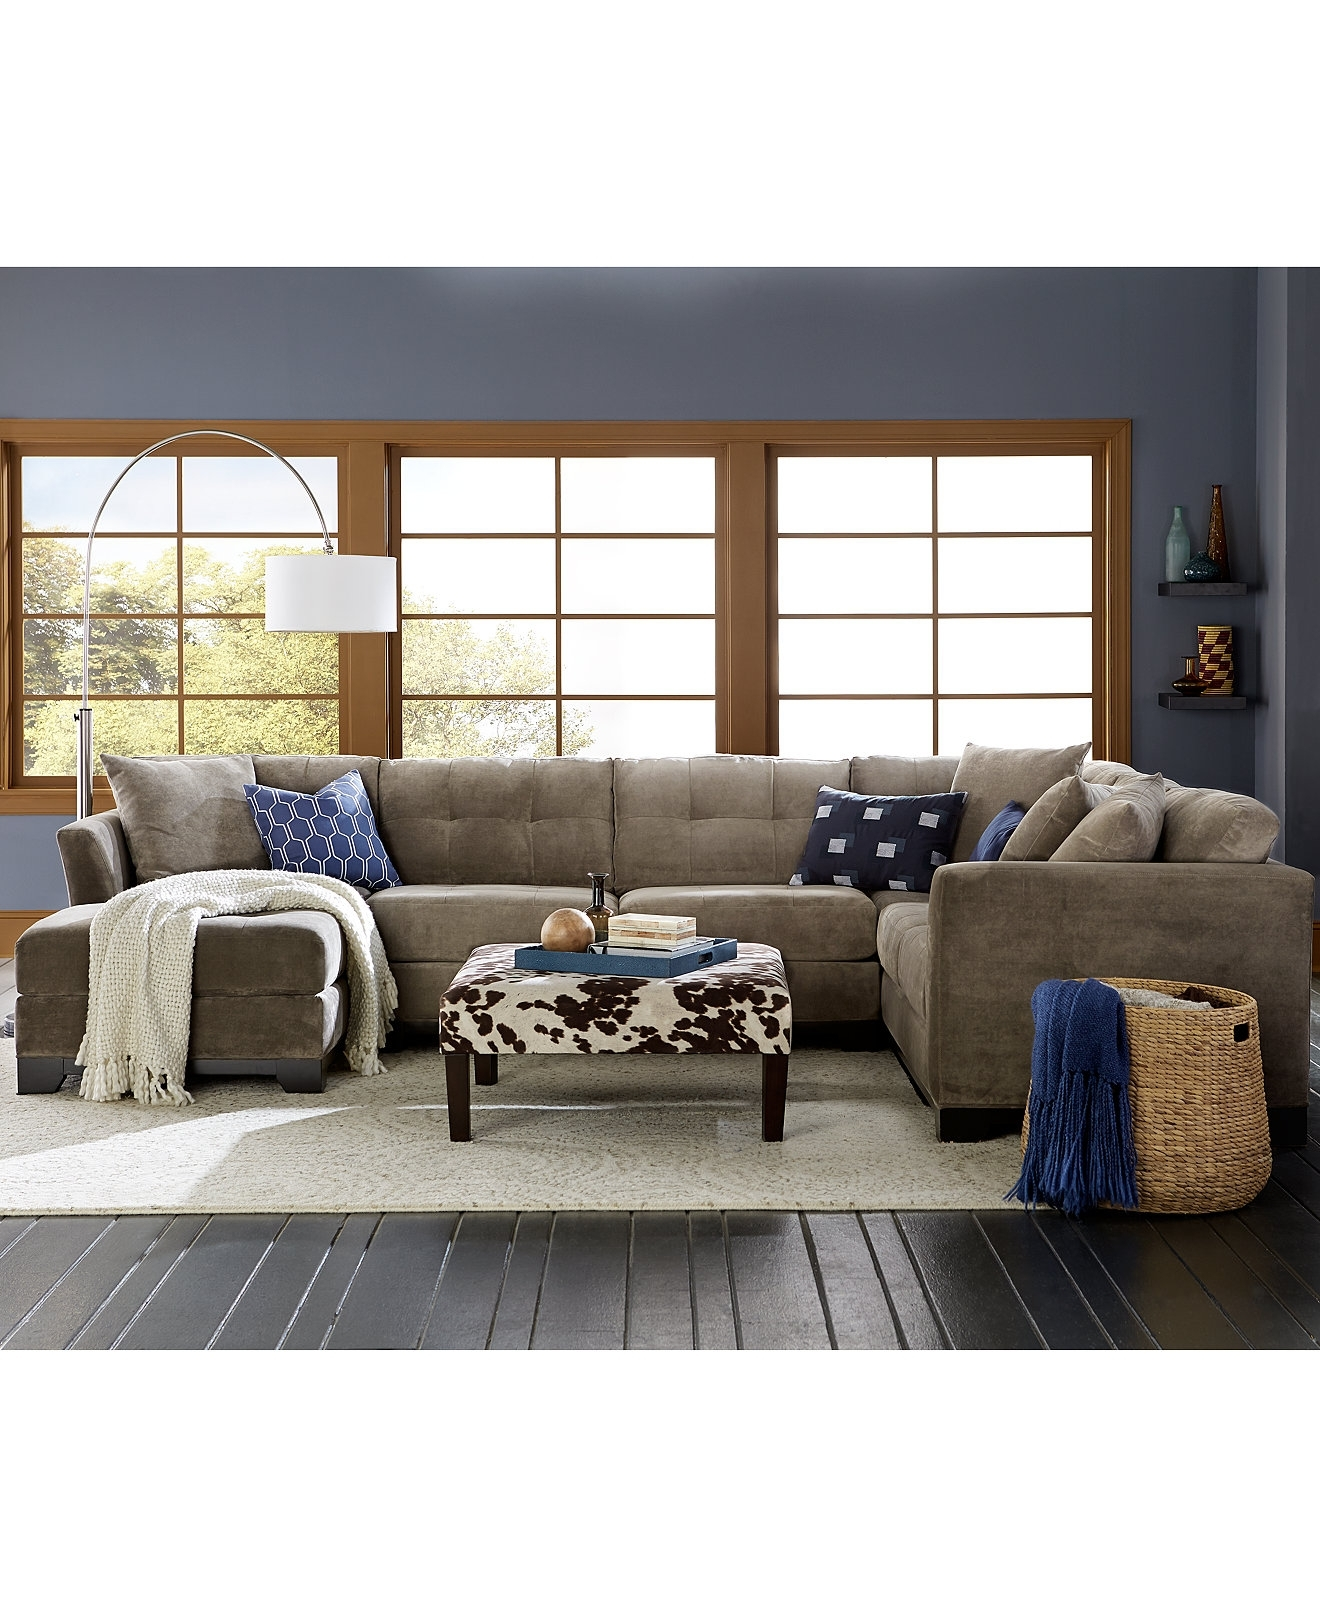 Sofas: Elegant Living Room Sofas Designmacys Sectional Sofa Within Preferred Macys Sectional Sofas (View 18 of 20)